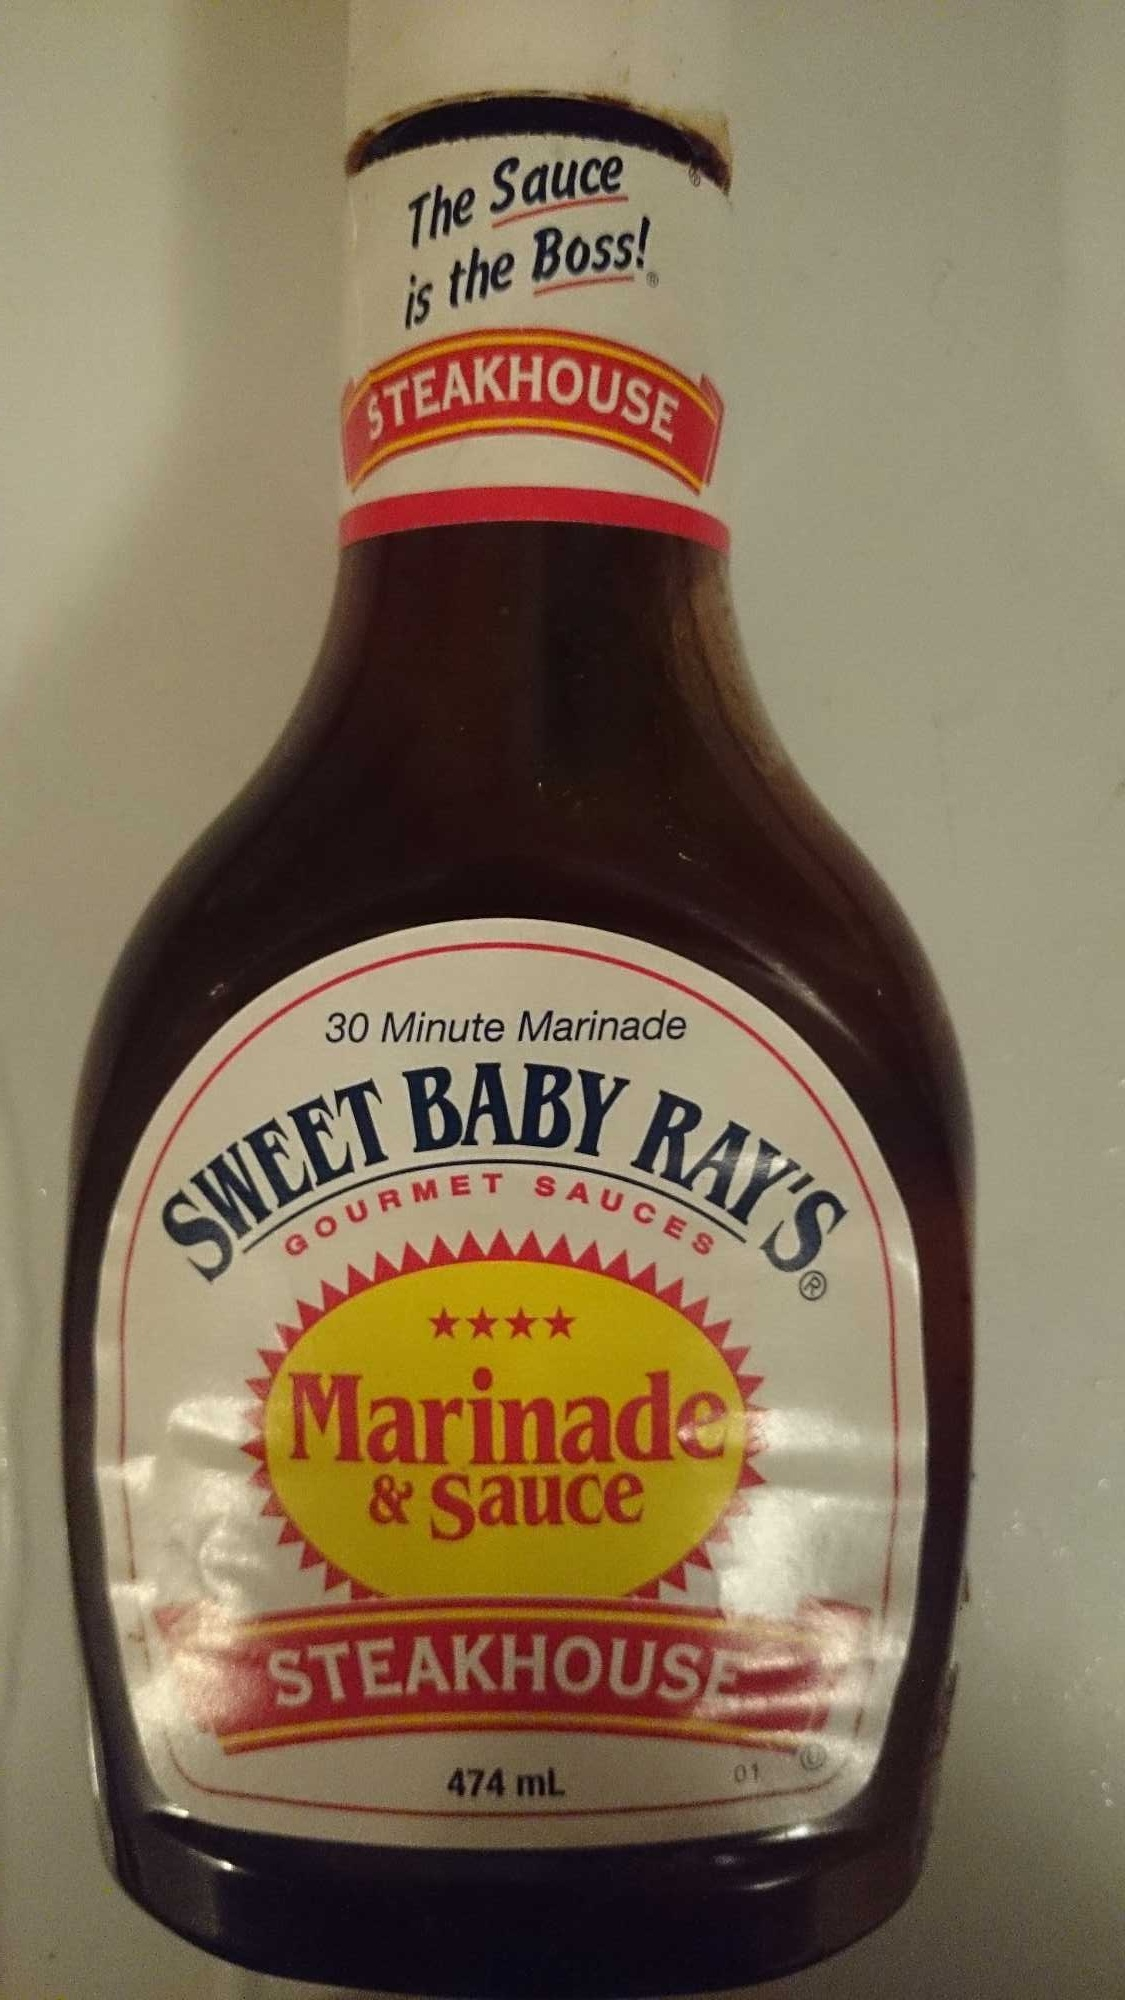 Sweet Baby Rays Steakhouse Marinade & Sauce - Product